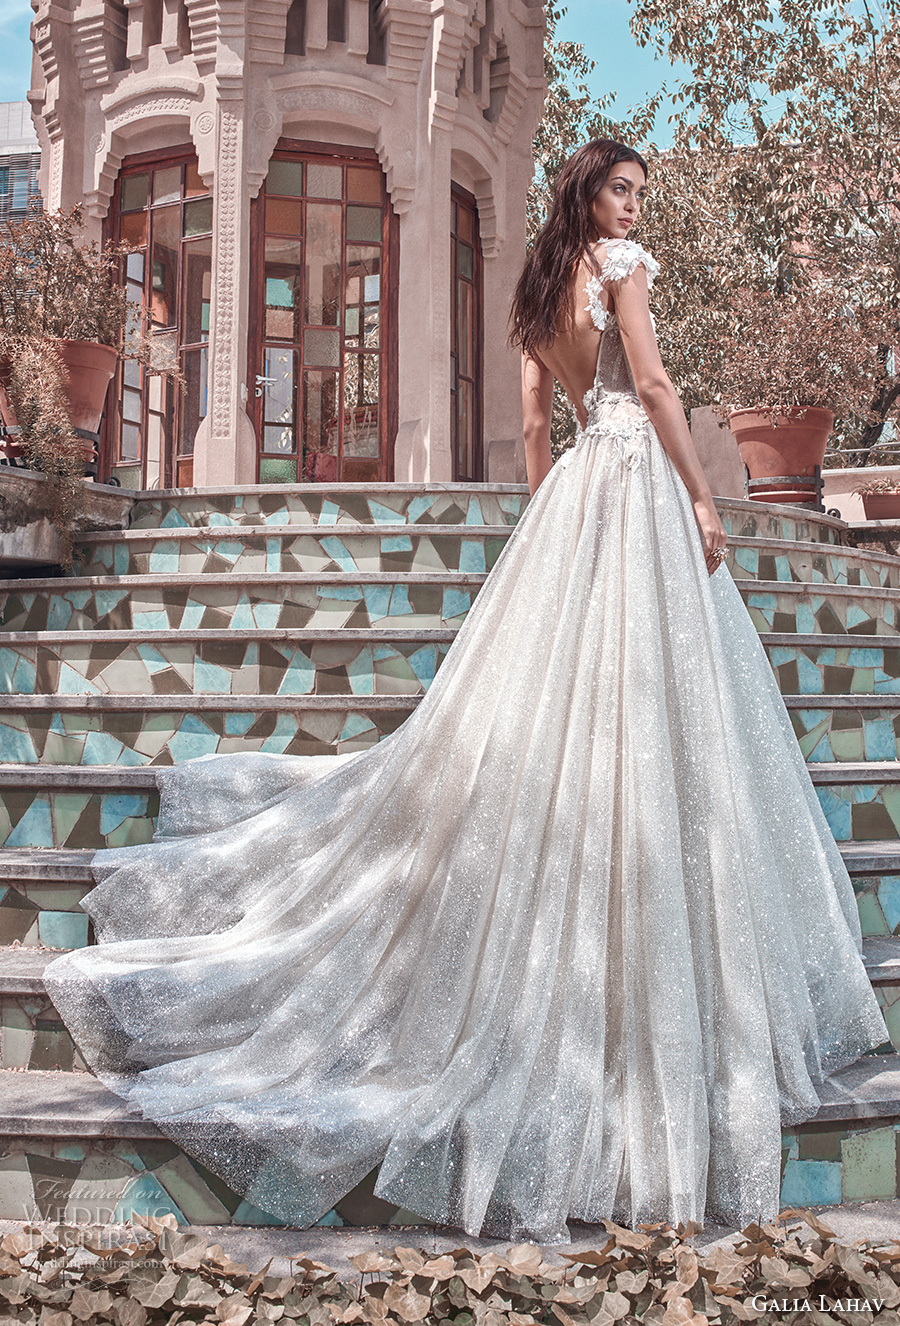 galia lahav spring 2018 bridal cap sleeves deep plunging sweetheart neckline heavily embellished bodice glitter skirt romantic a  line wedding dress open back chapel train (liliya) bv